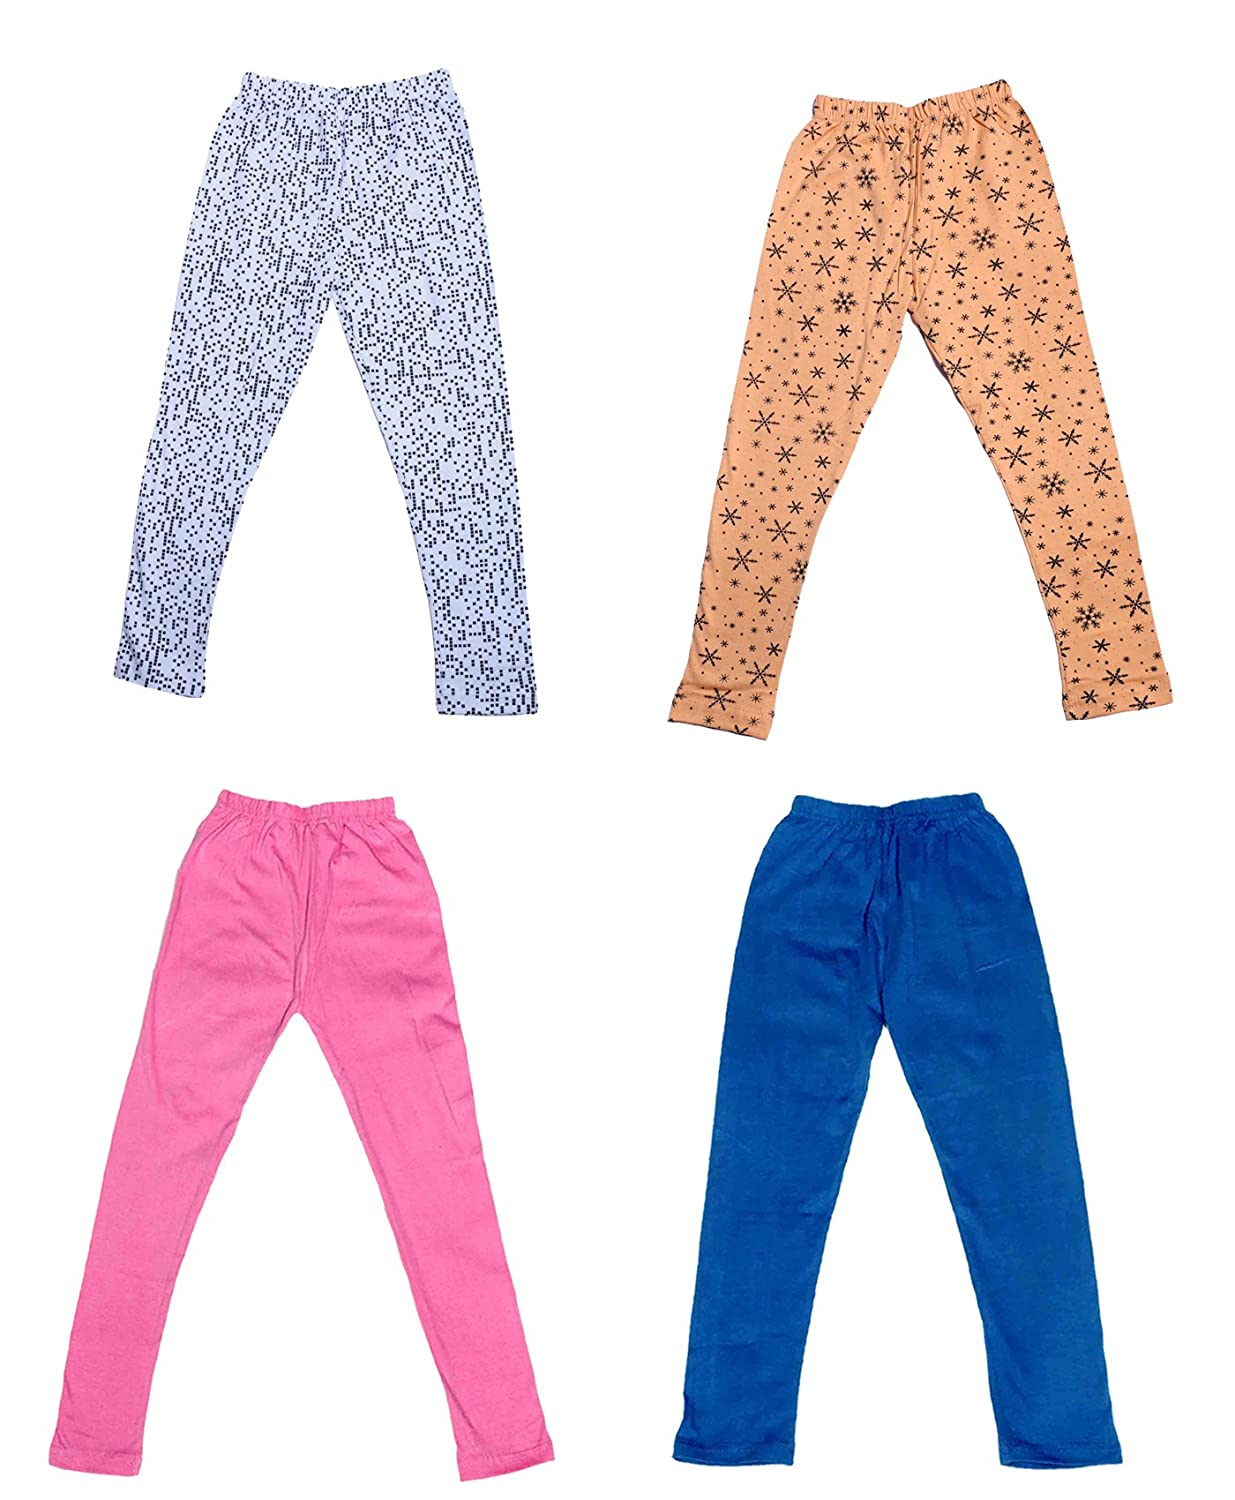 Indistar Girls 2 Cotton Solid Legging Pants and 2 Cotton Printed Legging Pants /_Multicolor/_Size-13-14 Years/_71408091921-IW-P4-36 Pack Of 4